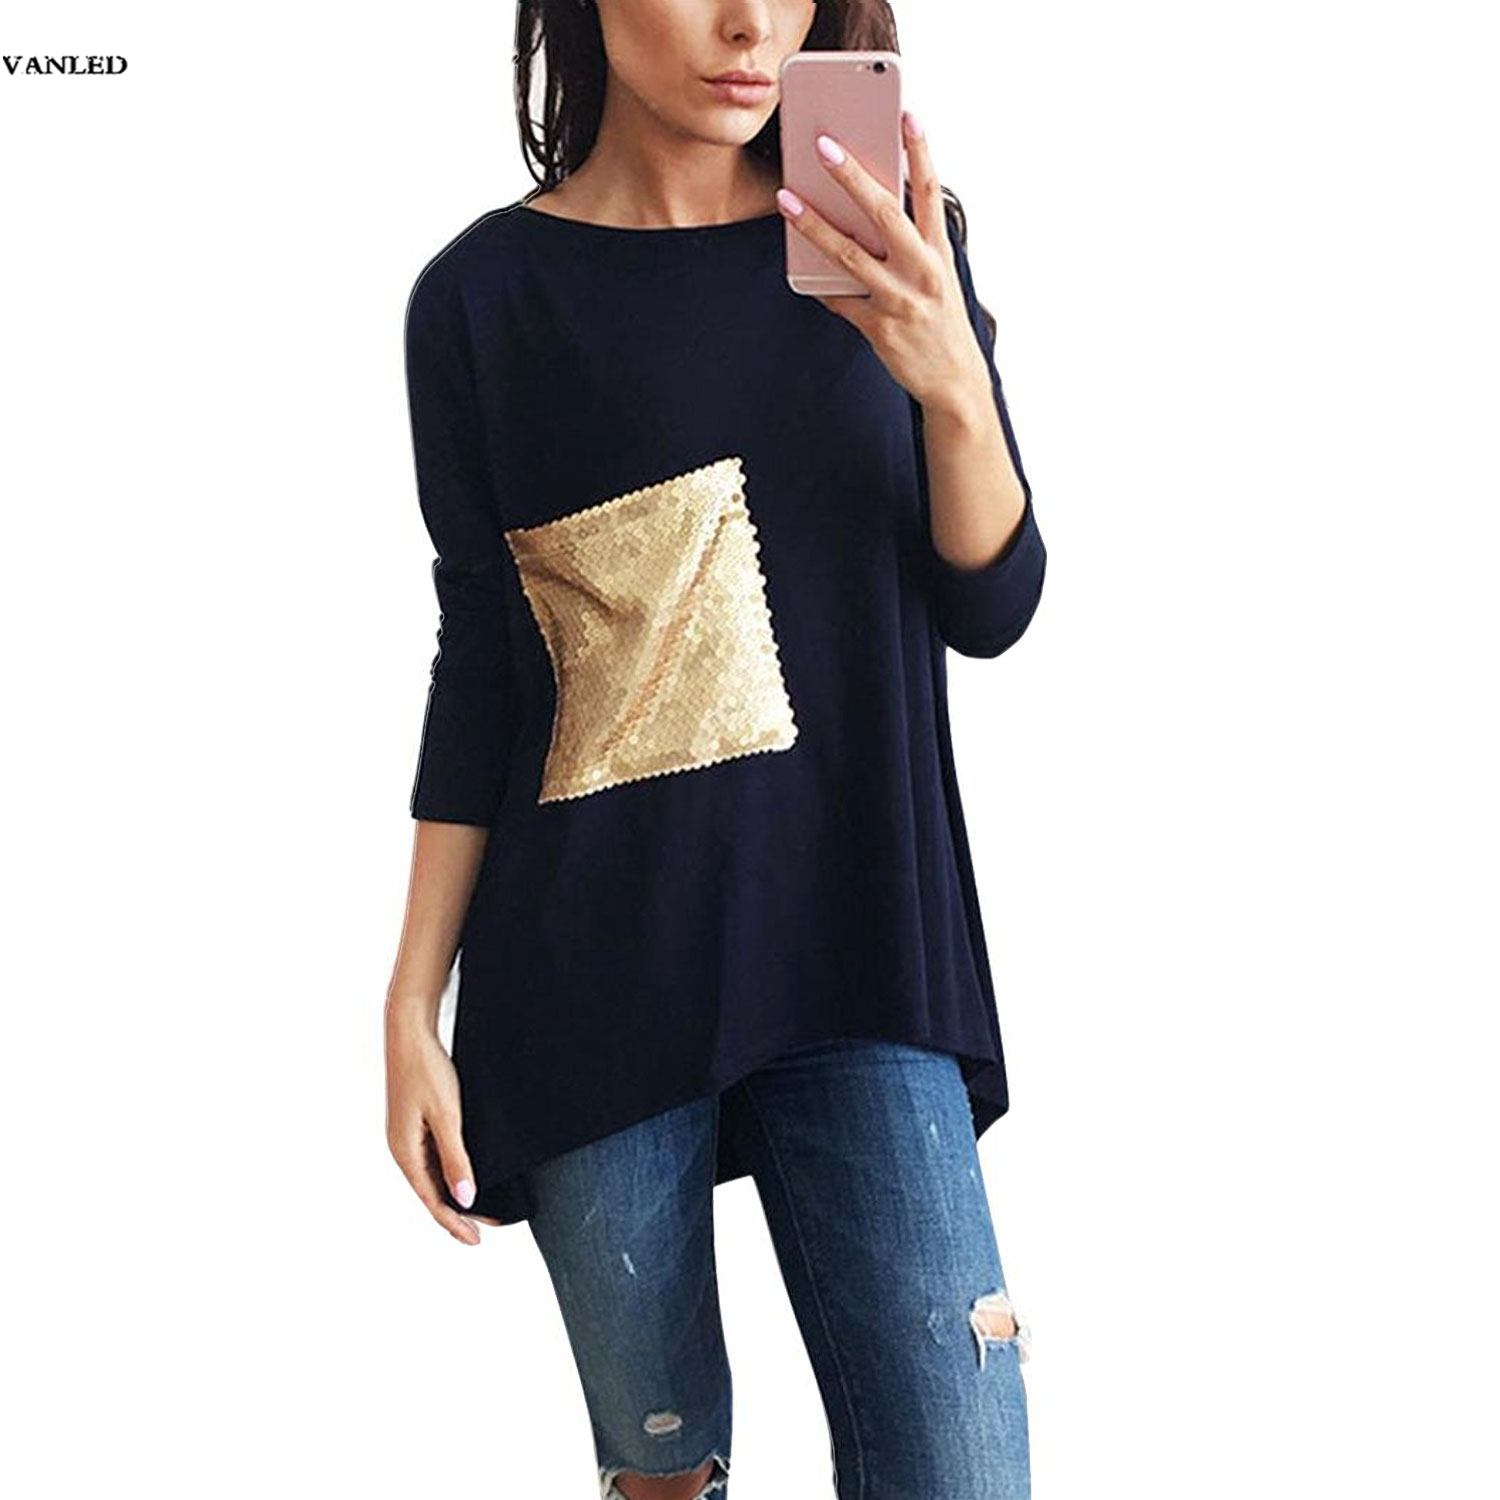 Vanled Women Casual Long Sleeve T Shirts Tops Brief